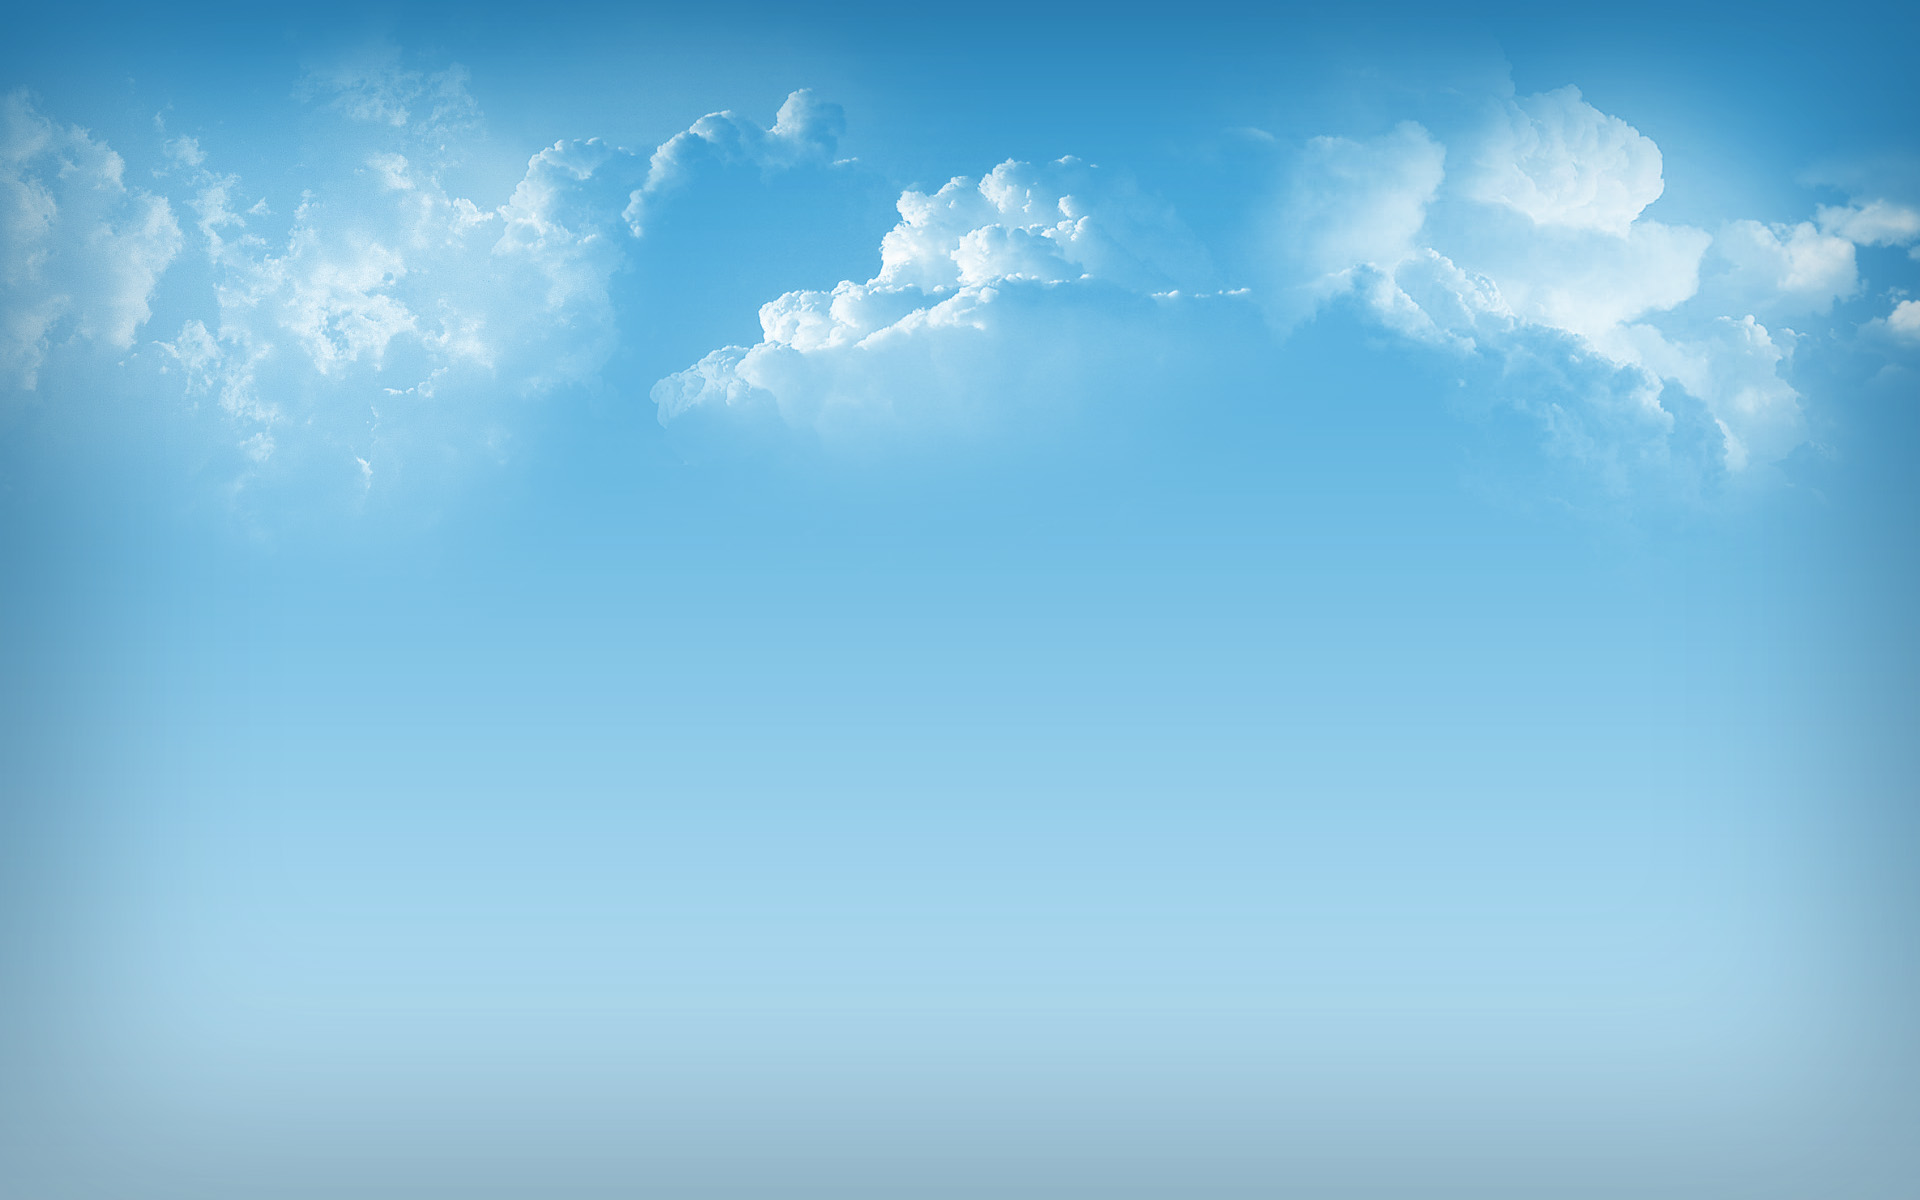 More Sky Wallpapers   HD Wallpapers Backgrounds of Your Choice 1920x1200